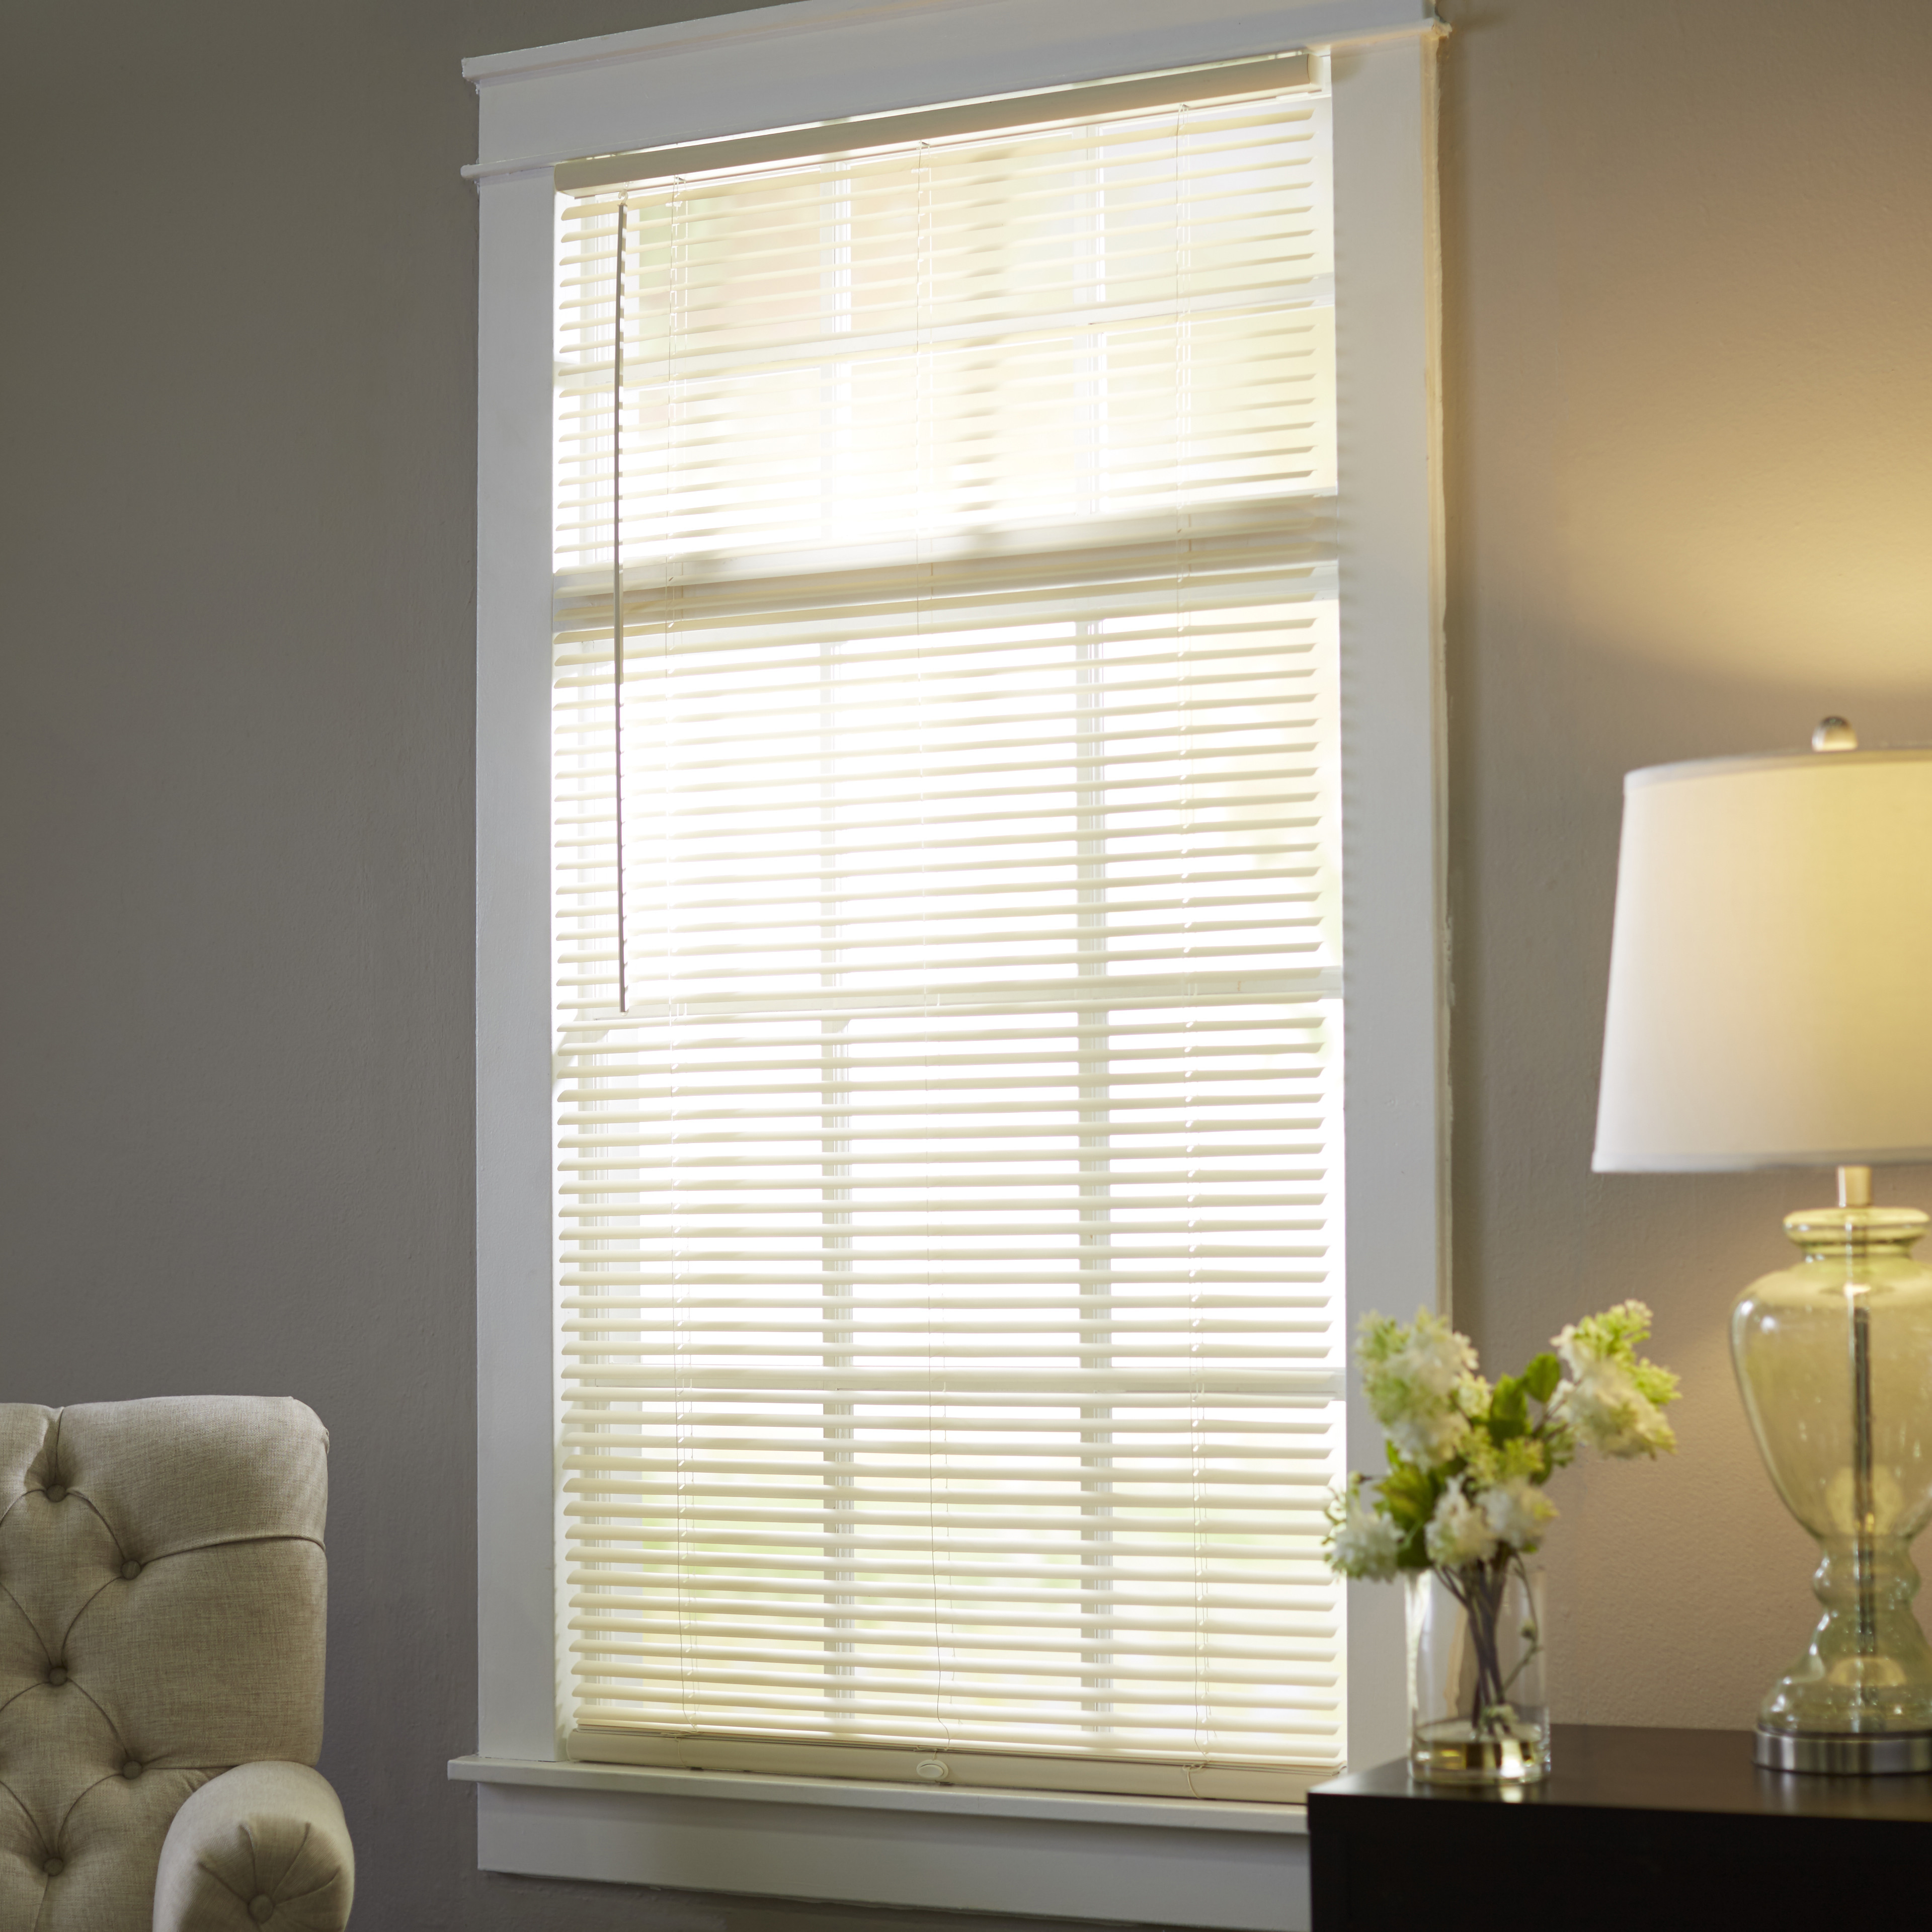 Home Depot Blackout Shades | Fence Posts Menards | Menards Window Blinds